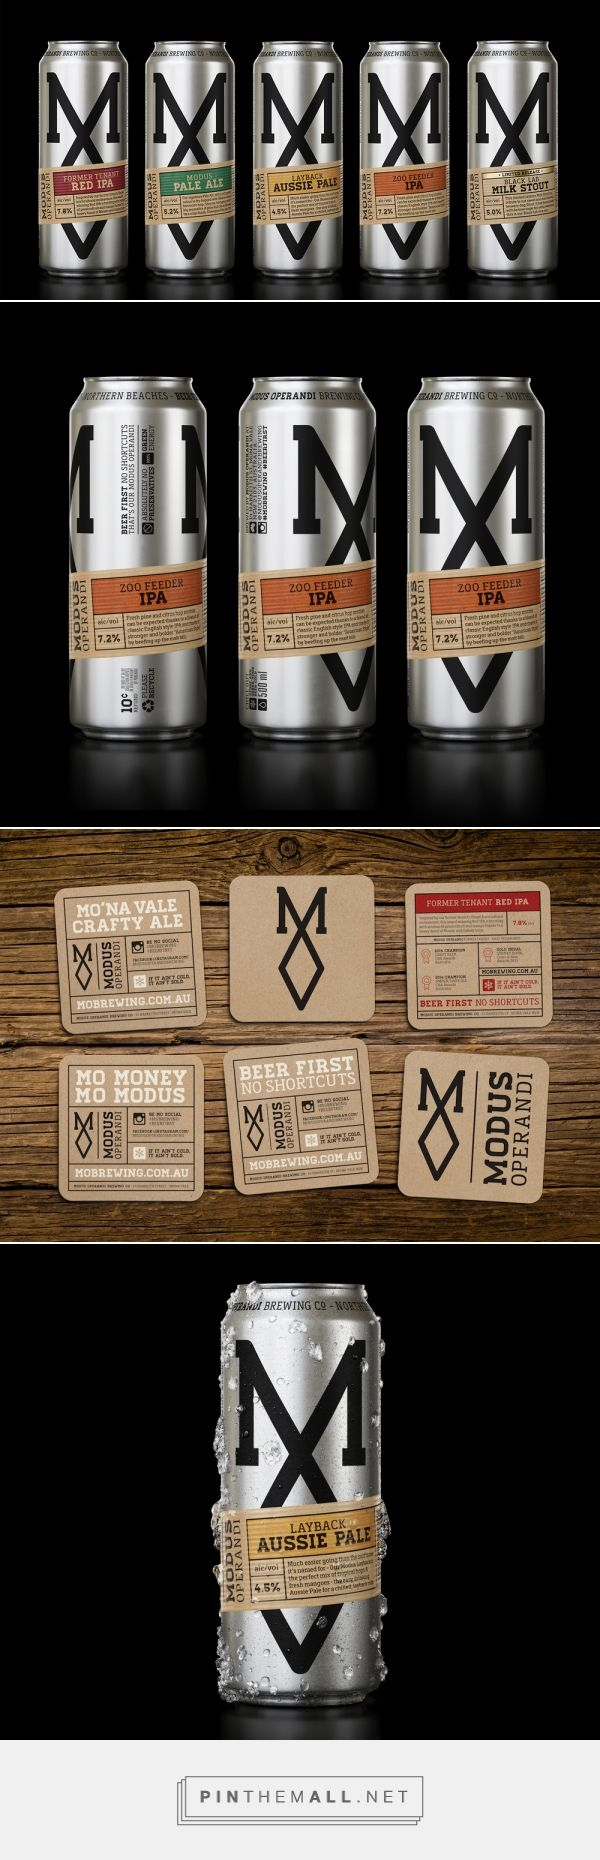 Modus Operandi Brewing — The Dieline - Branding & Packaging... - a grouped images picture - Pin Them All